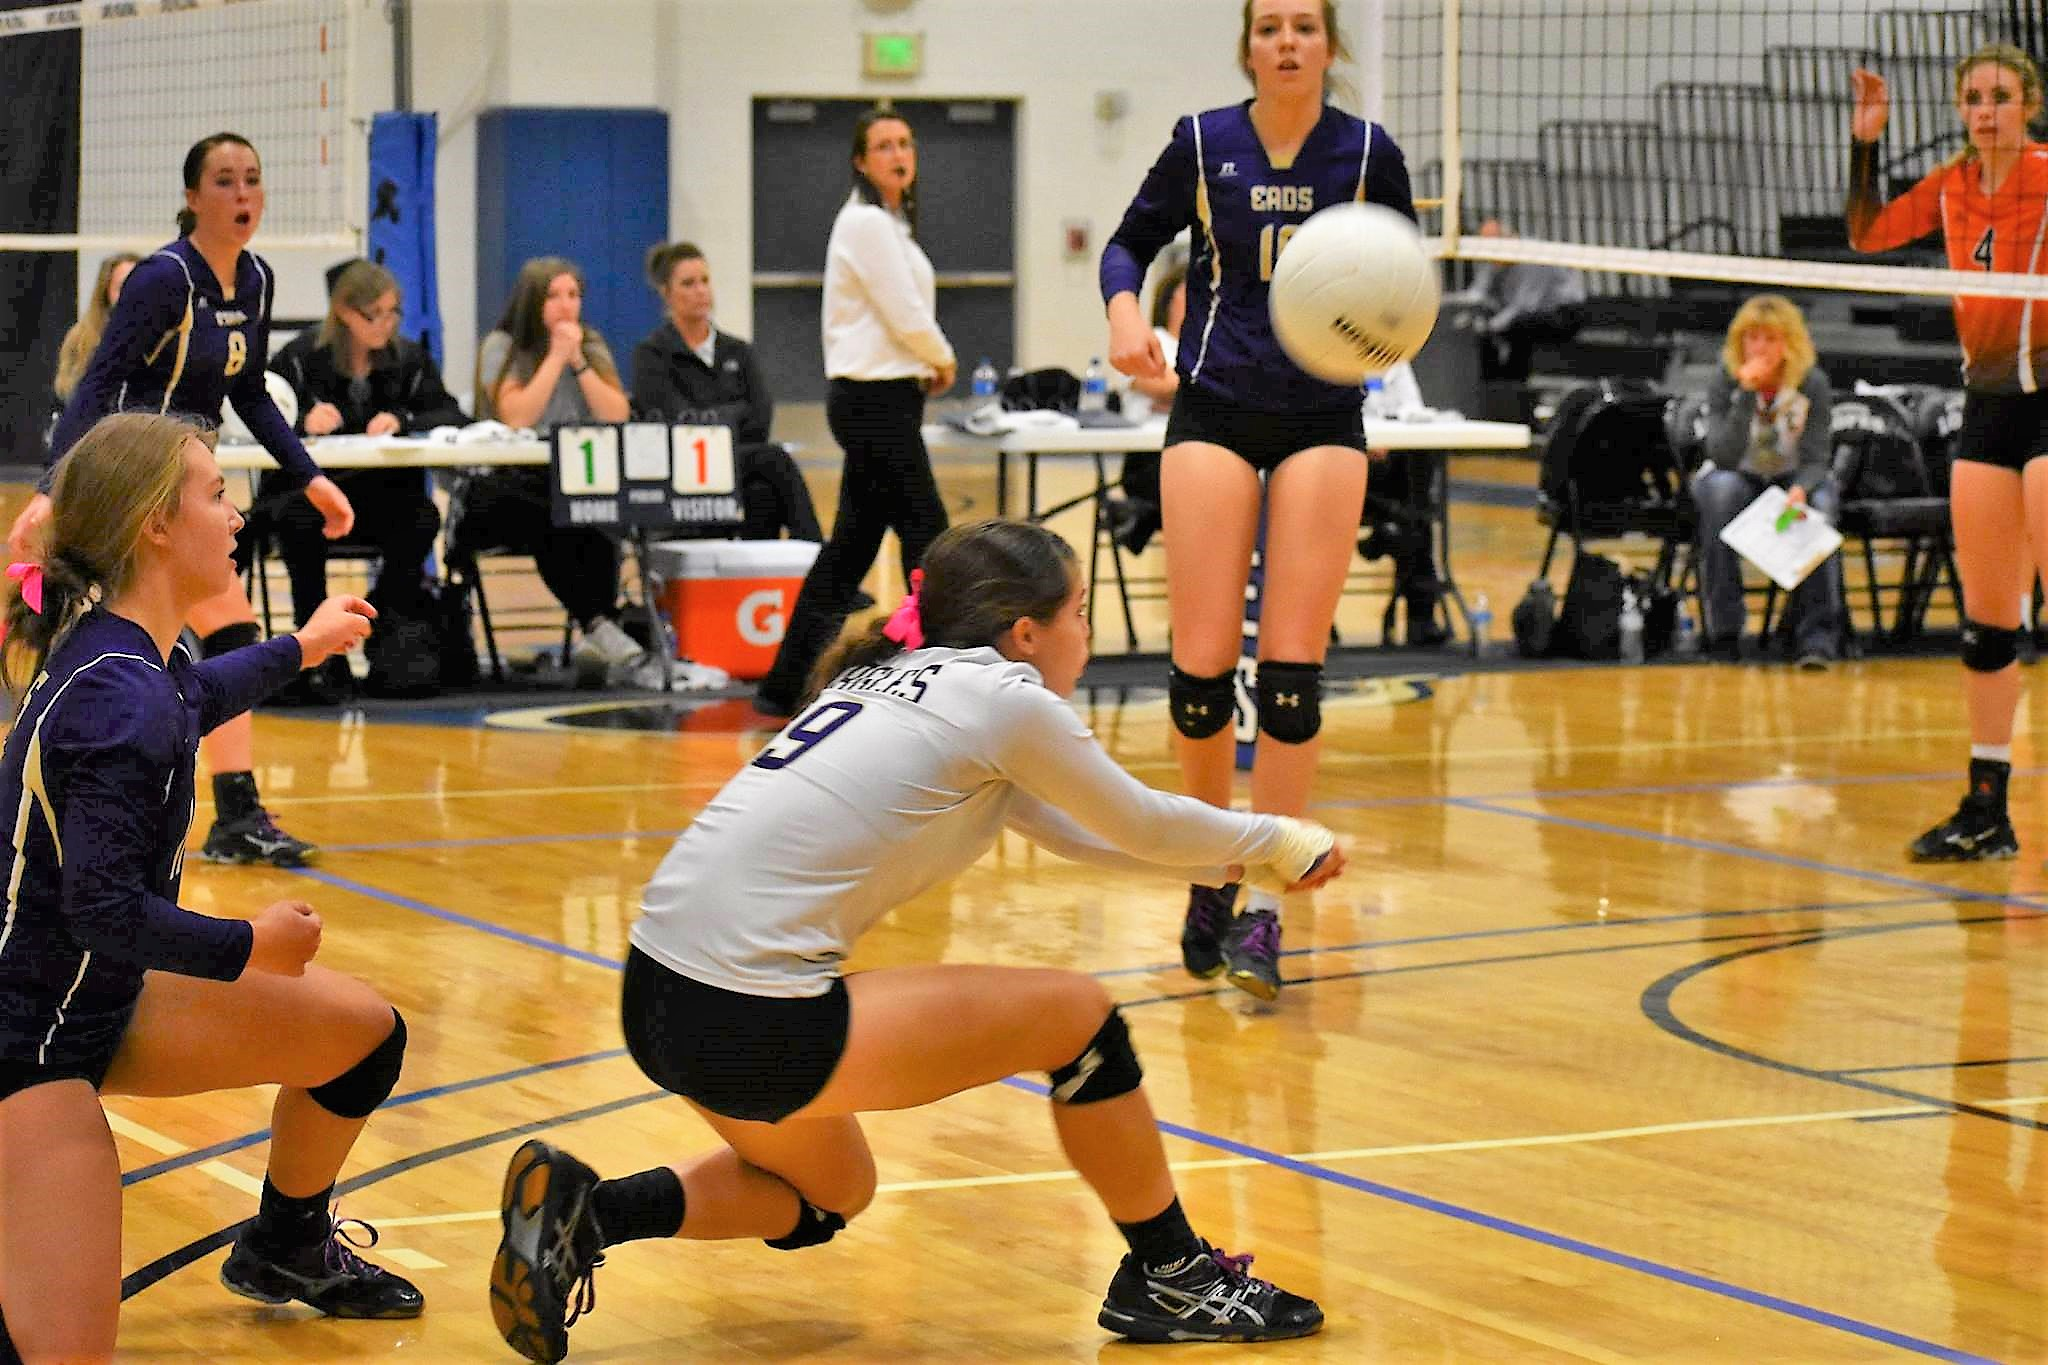 Hadlie Rittgers digs for a ball during District 2 Action - Photo Credit Wilson Photography